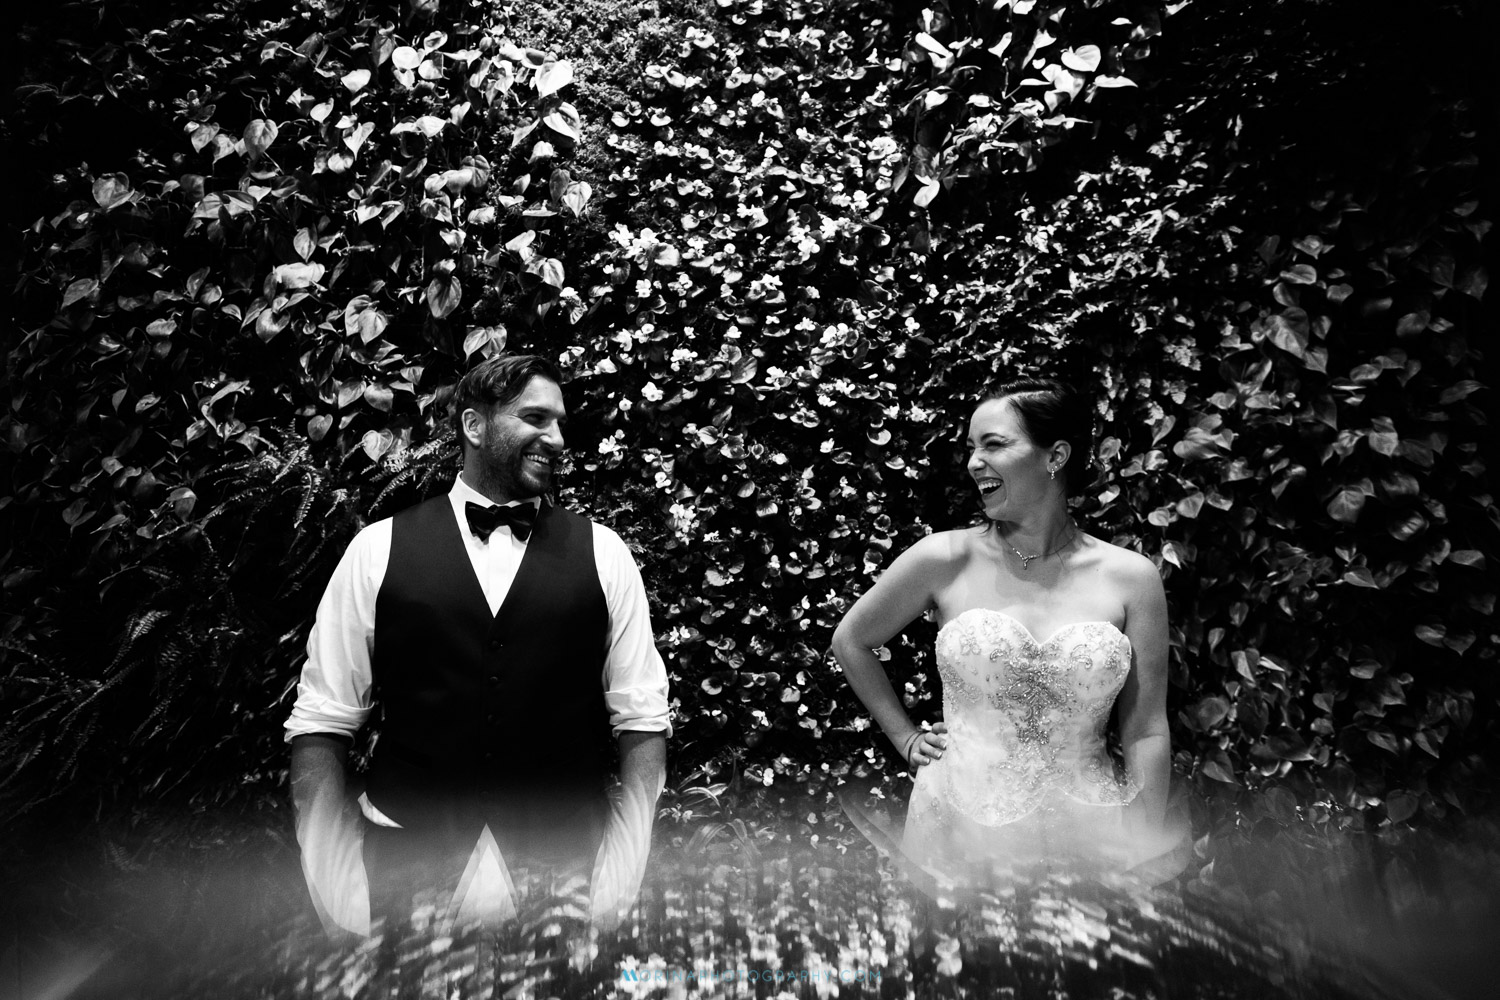 Jill & Rhett Wedding at Artesano Iron Works, Manayunk Philadelphia104.jpg